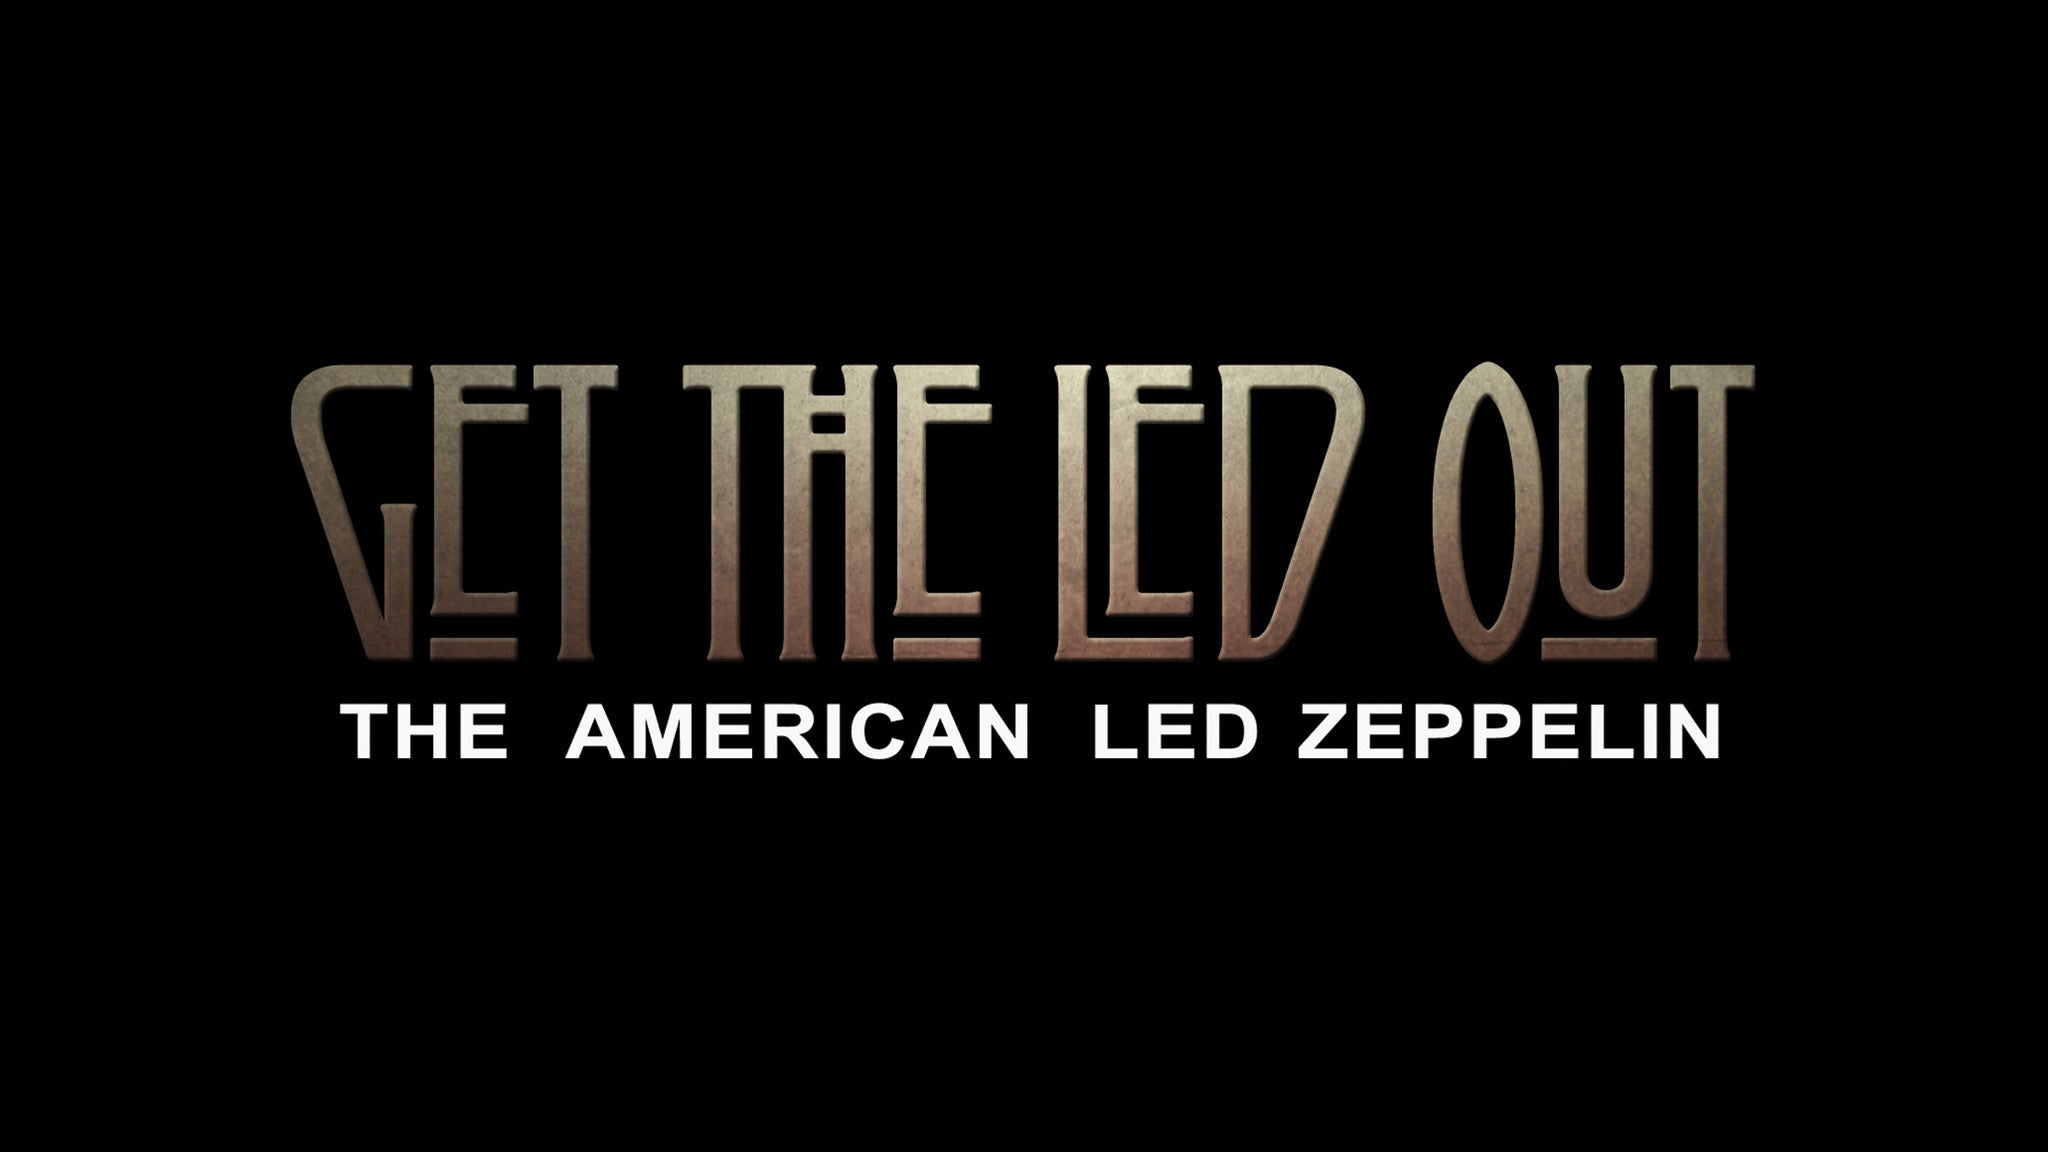 Get the Led Out at Uptown Theatre Napa